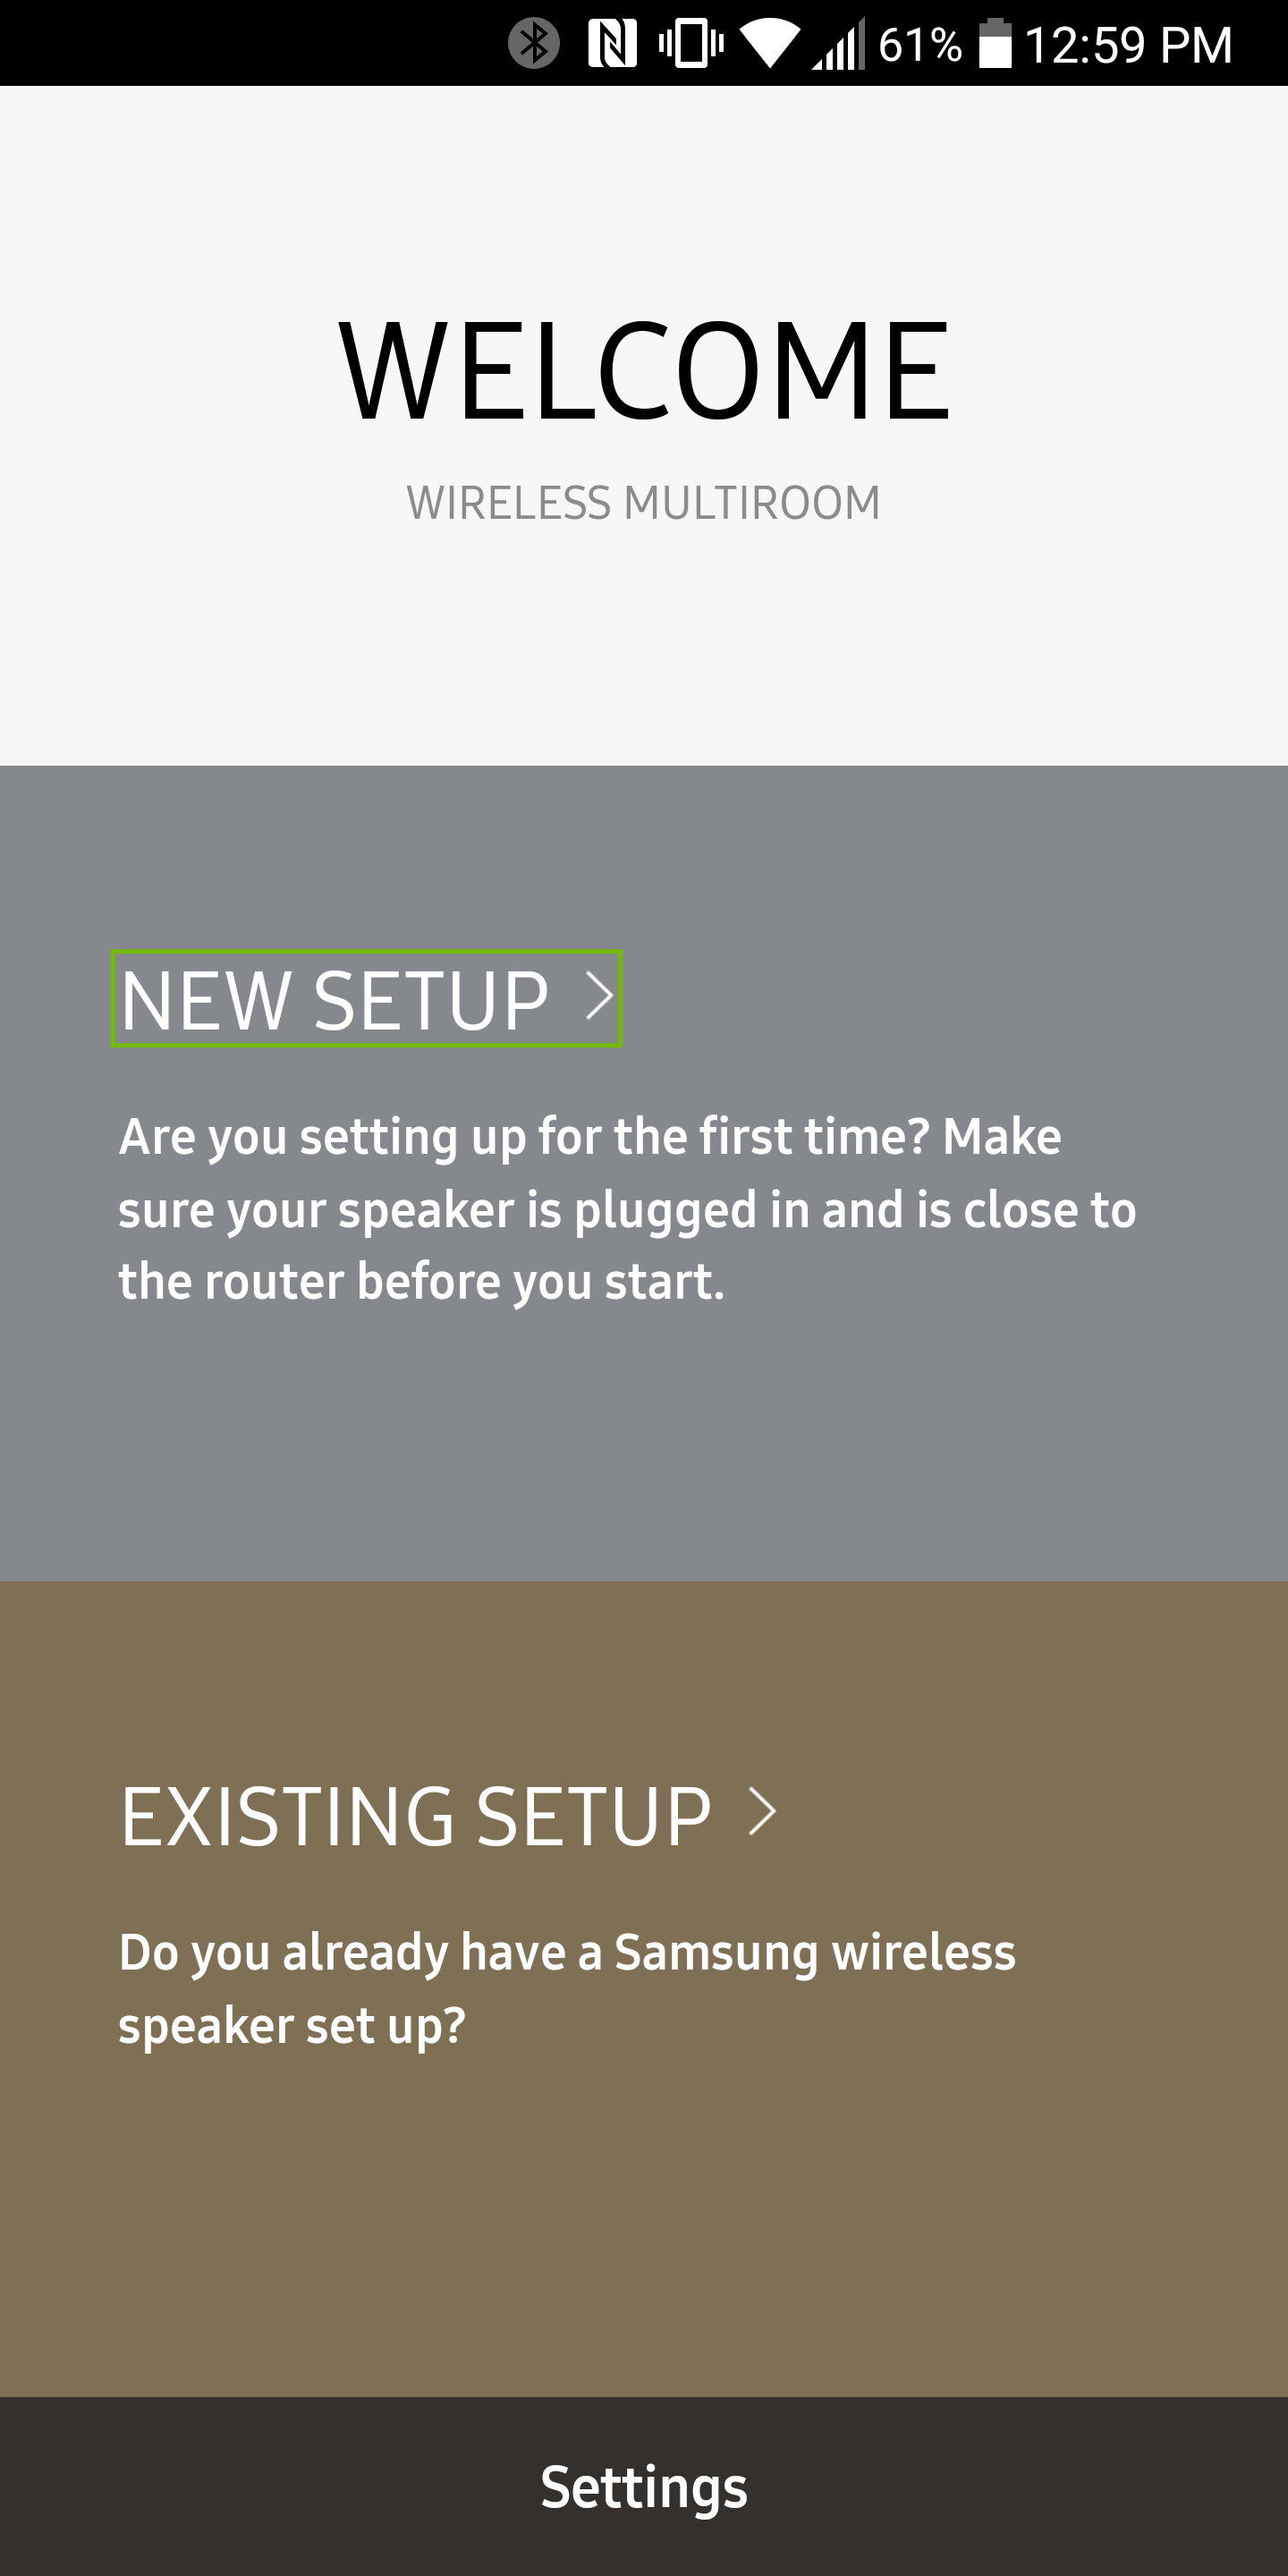 Wireless Multiroom app welcome screen with New Setup highlighted